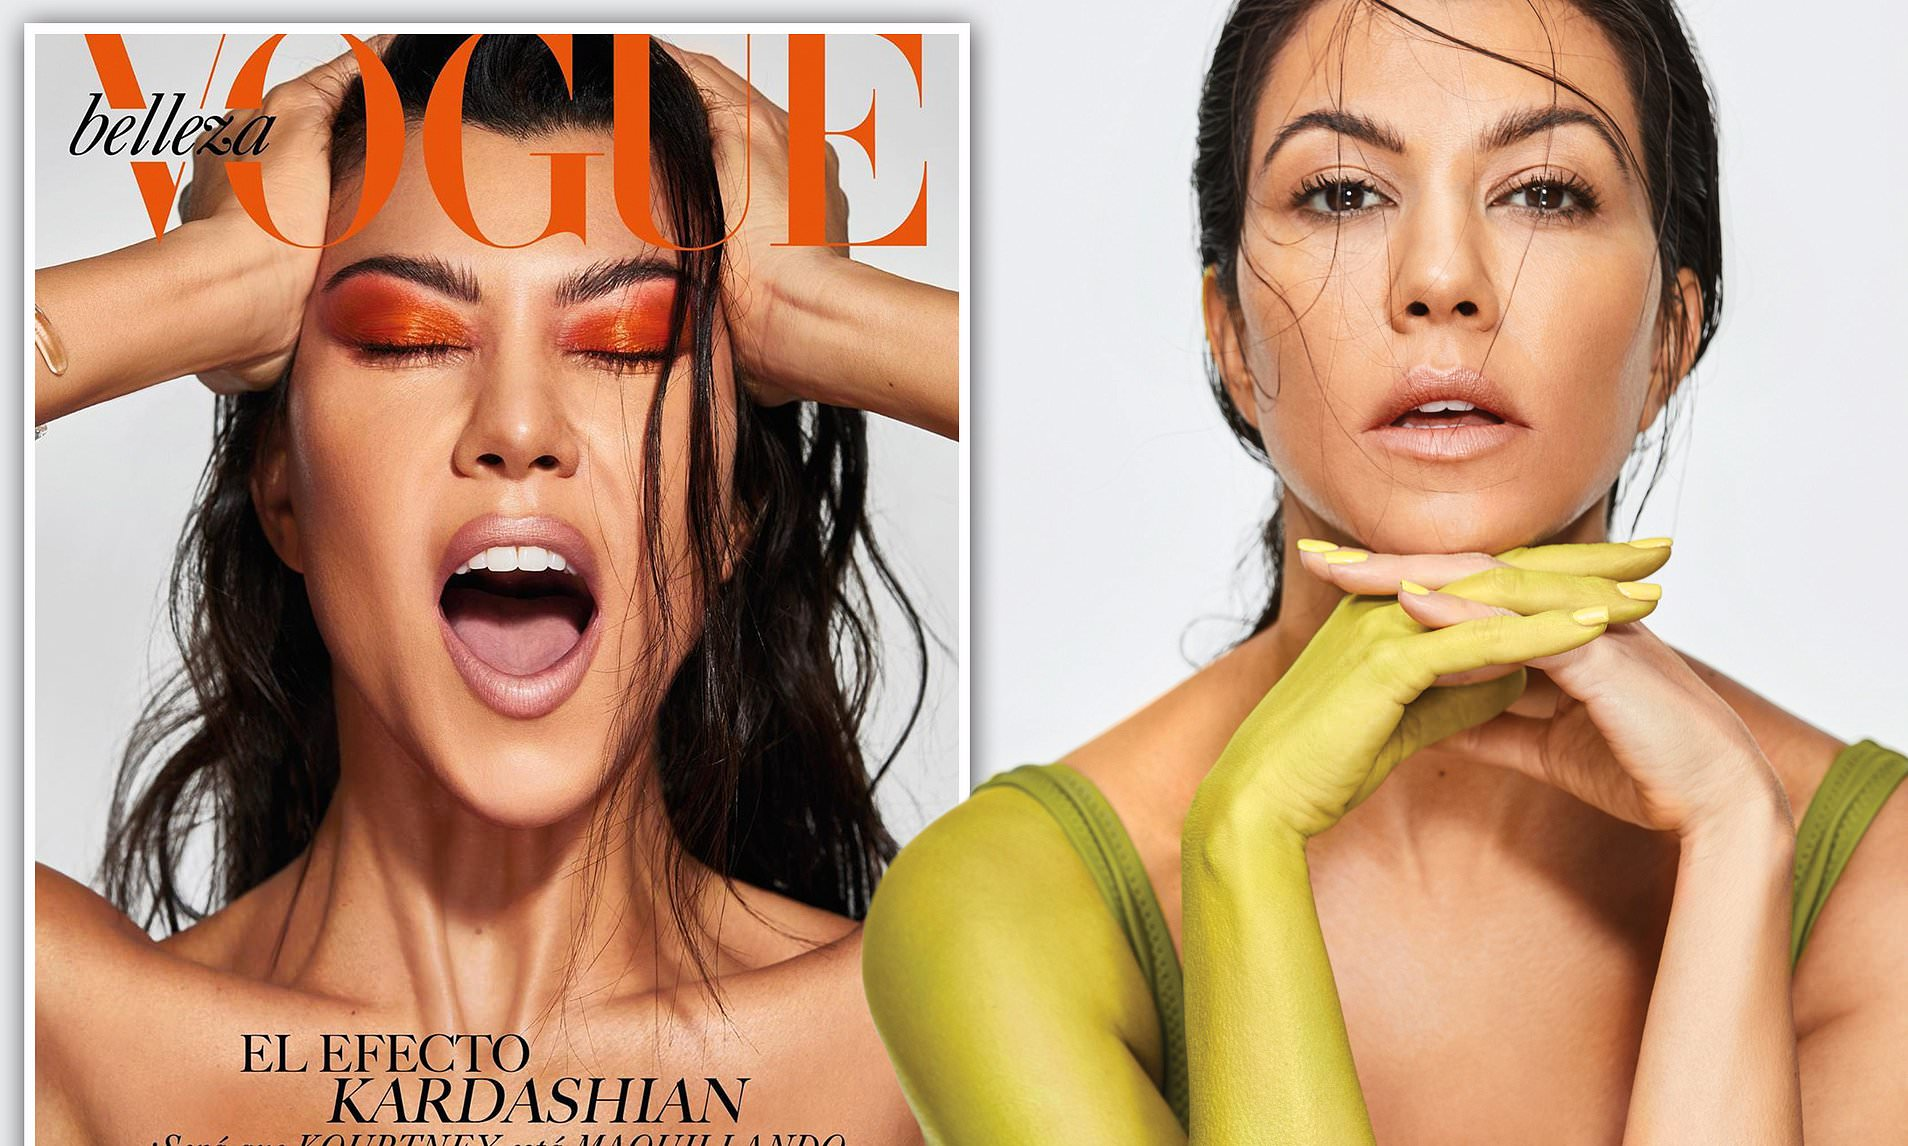 kourtney-kardashian-graces-the-cover-of-vogue-mexico-and-wears-nothing-but-a-neon-eyeshadow